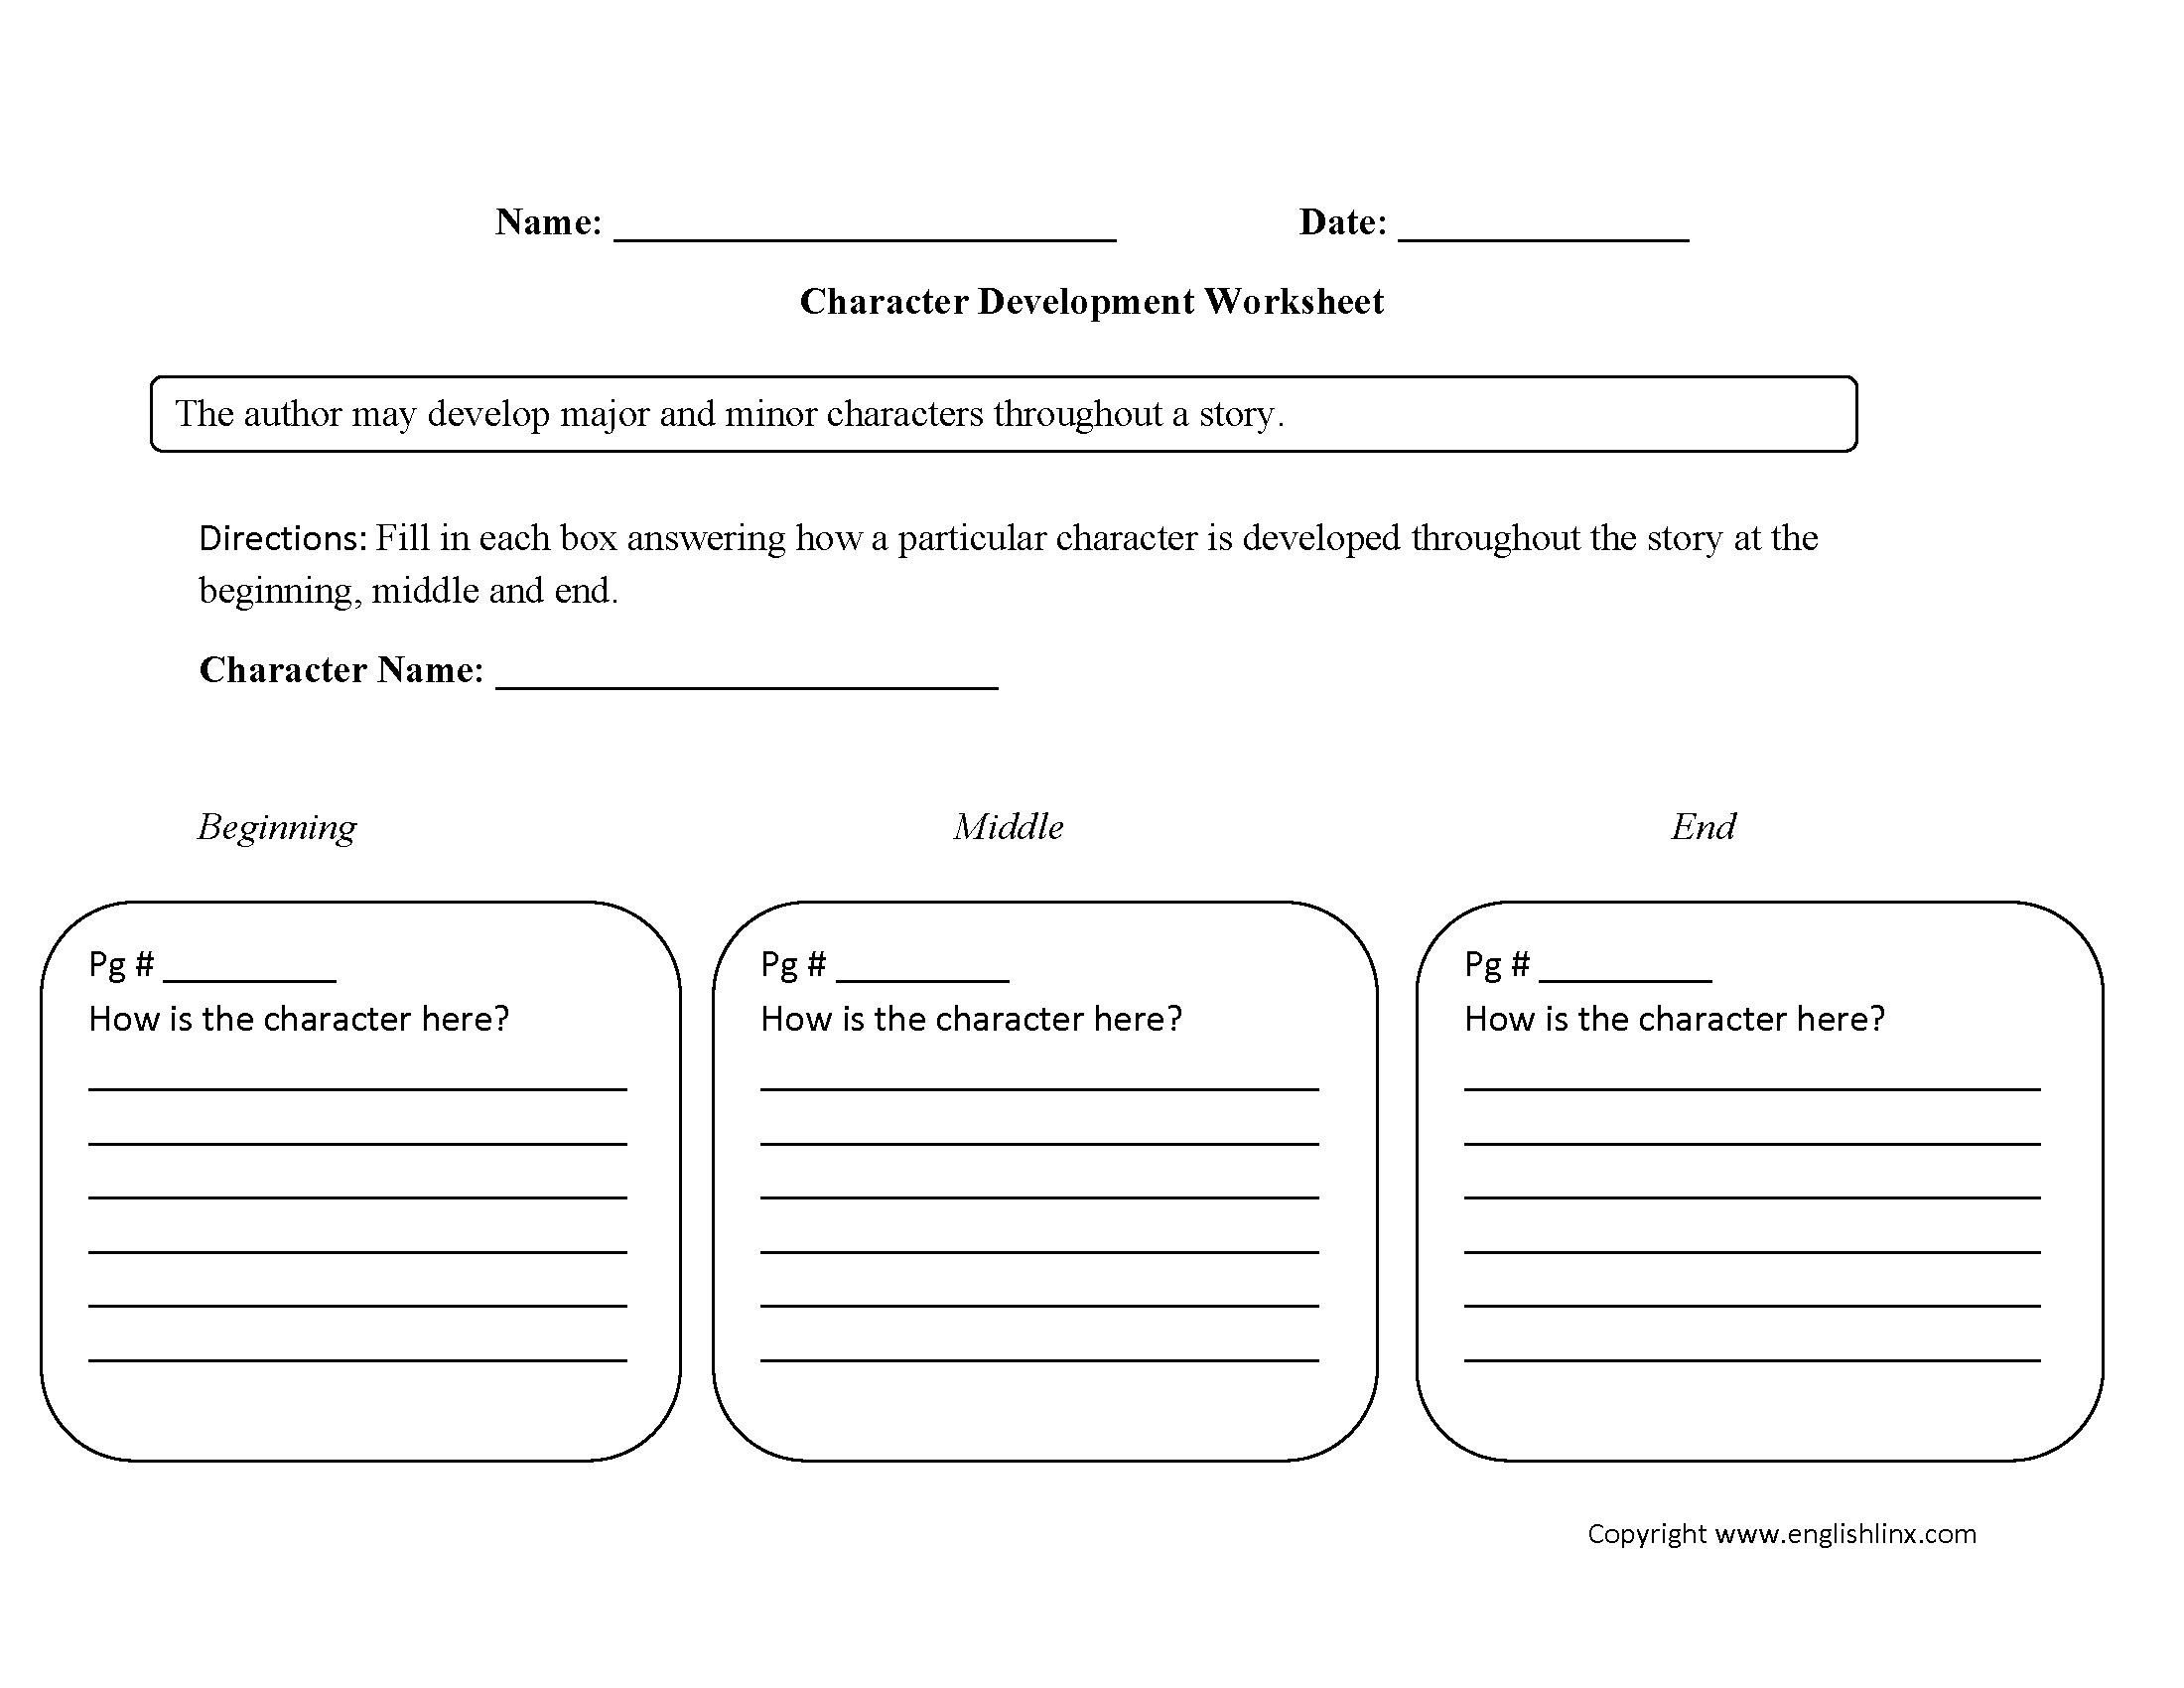 Single Character Development Characterysis Worksheet